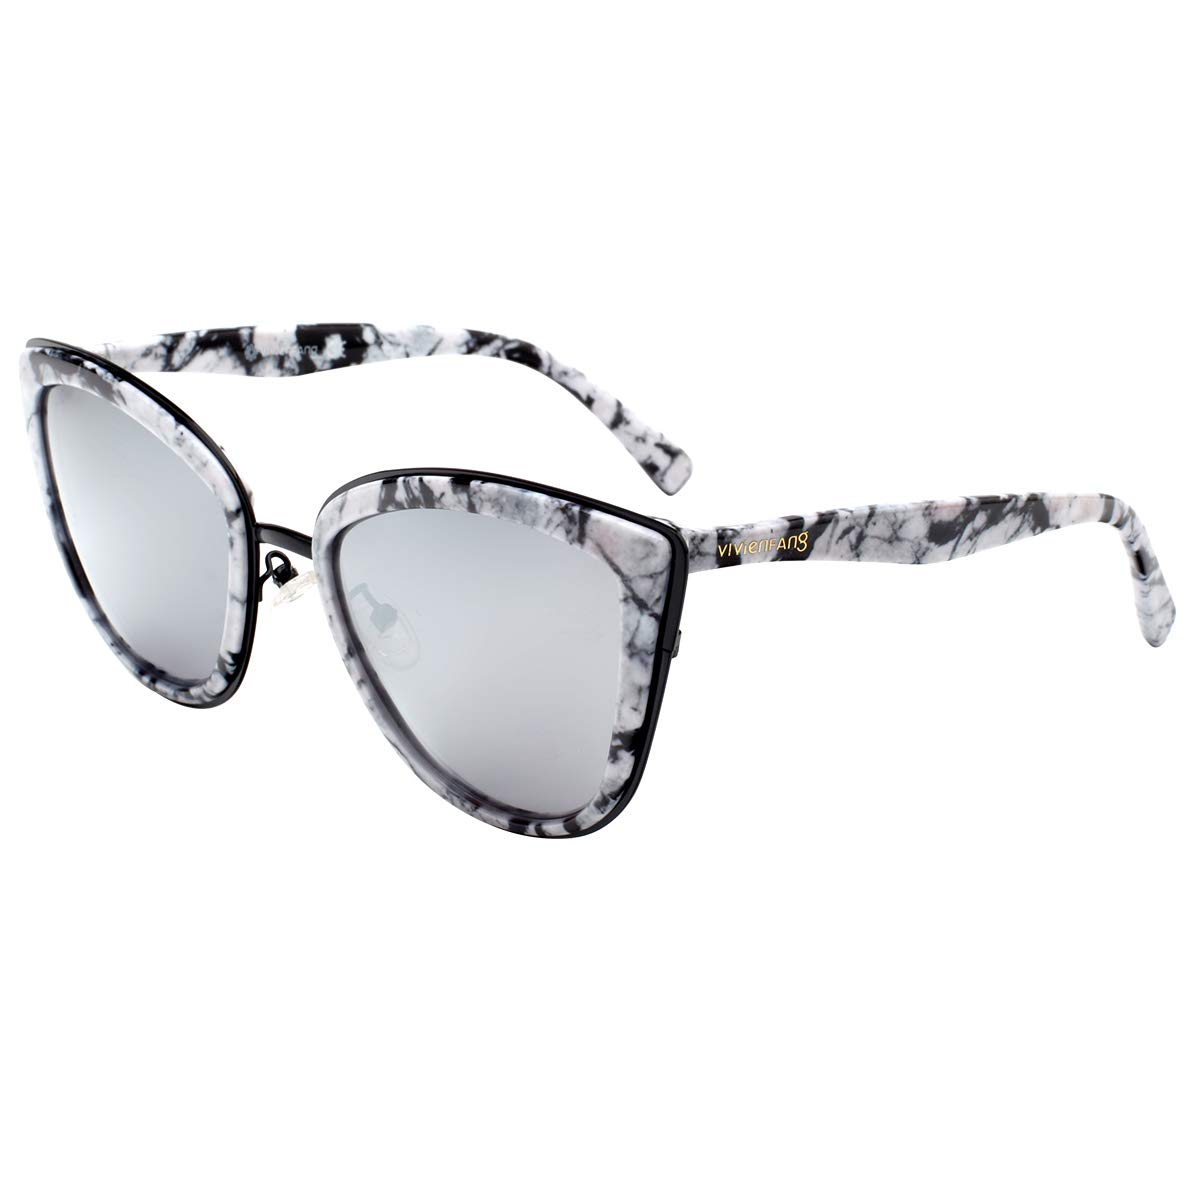 VIVIENFANG Color Mirrored Oversized Cateye Sunglasses Fashion Polarized Shades For Women P1891I White Marble by VIVIENFANG